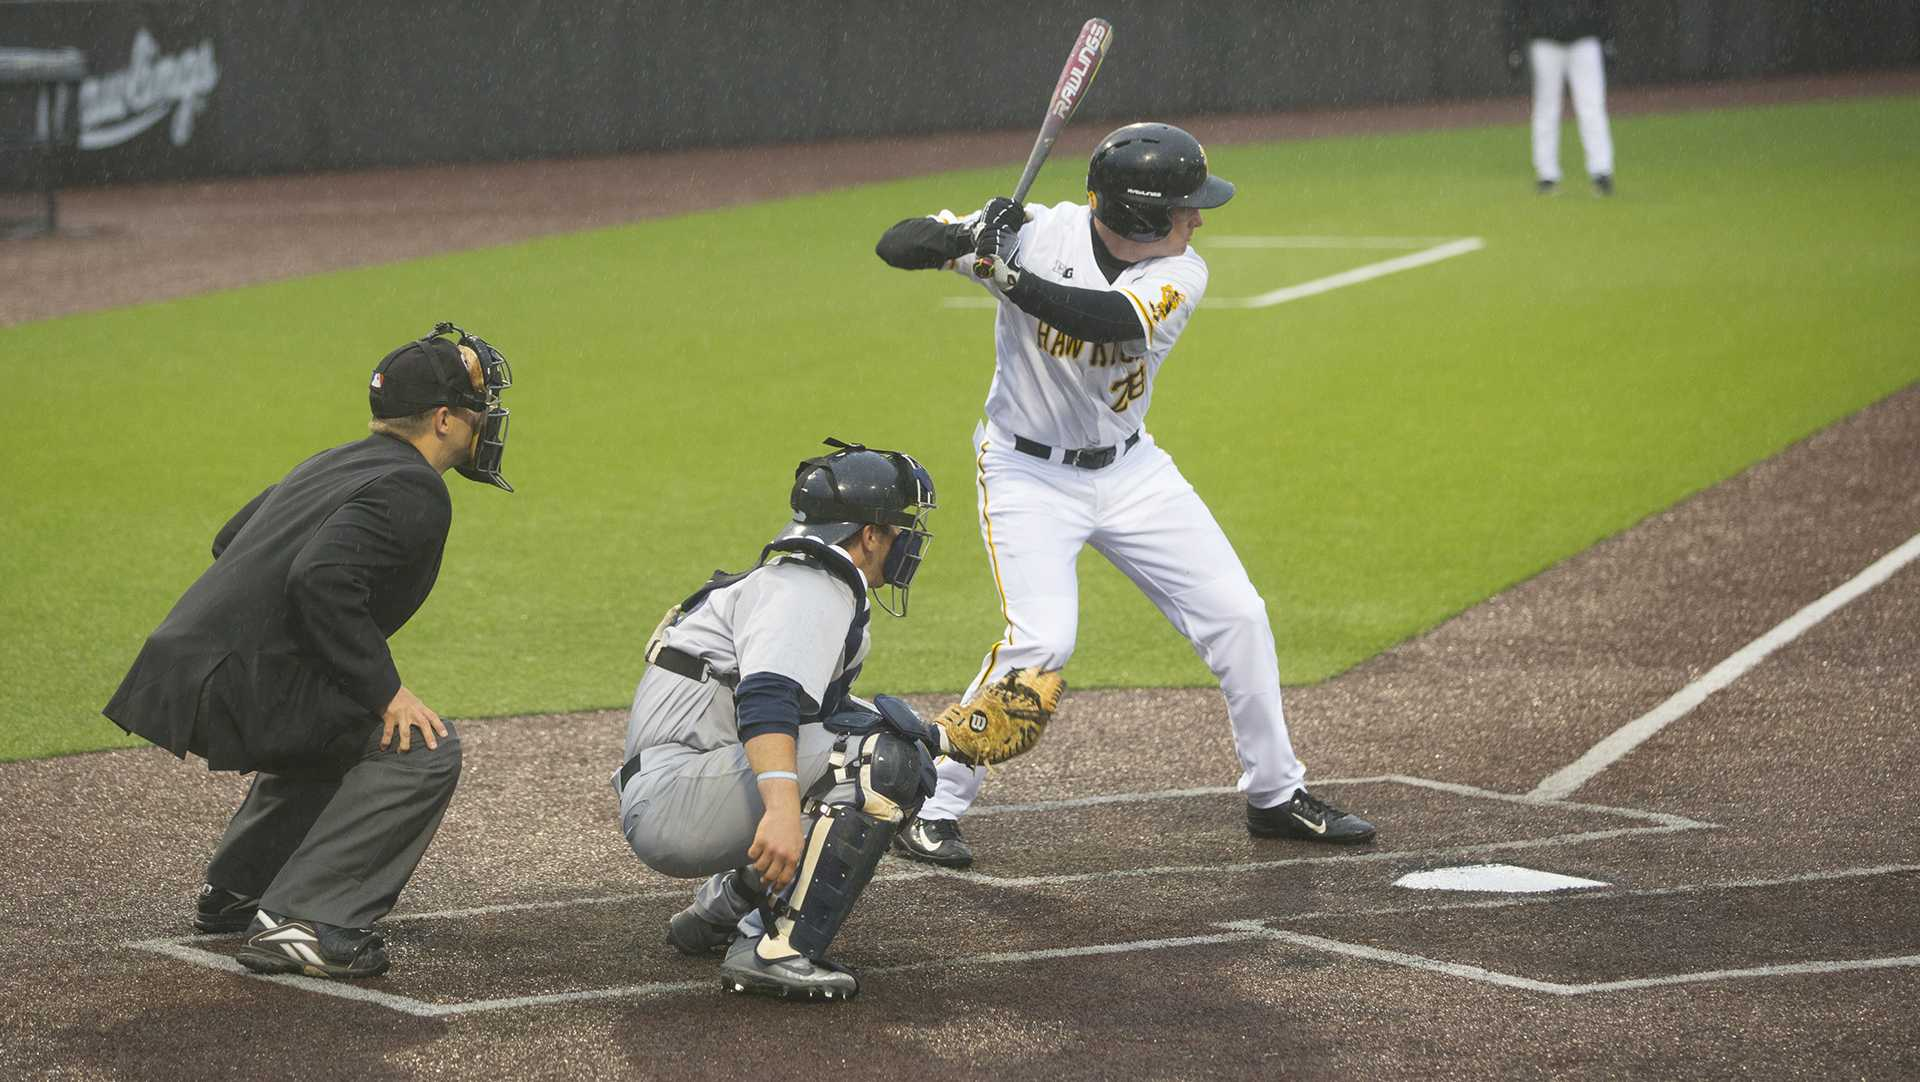 Iowa's Chris Whelan bats during game one of the Iowa-Penn State baseball series at Duane Banks Field on Friday, April 28, 2017. The Hawkeyes swept the rain delayed, late night double header, 4-2 and 8-2, respectively. (The Daily Iowan/Lily Smith)